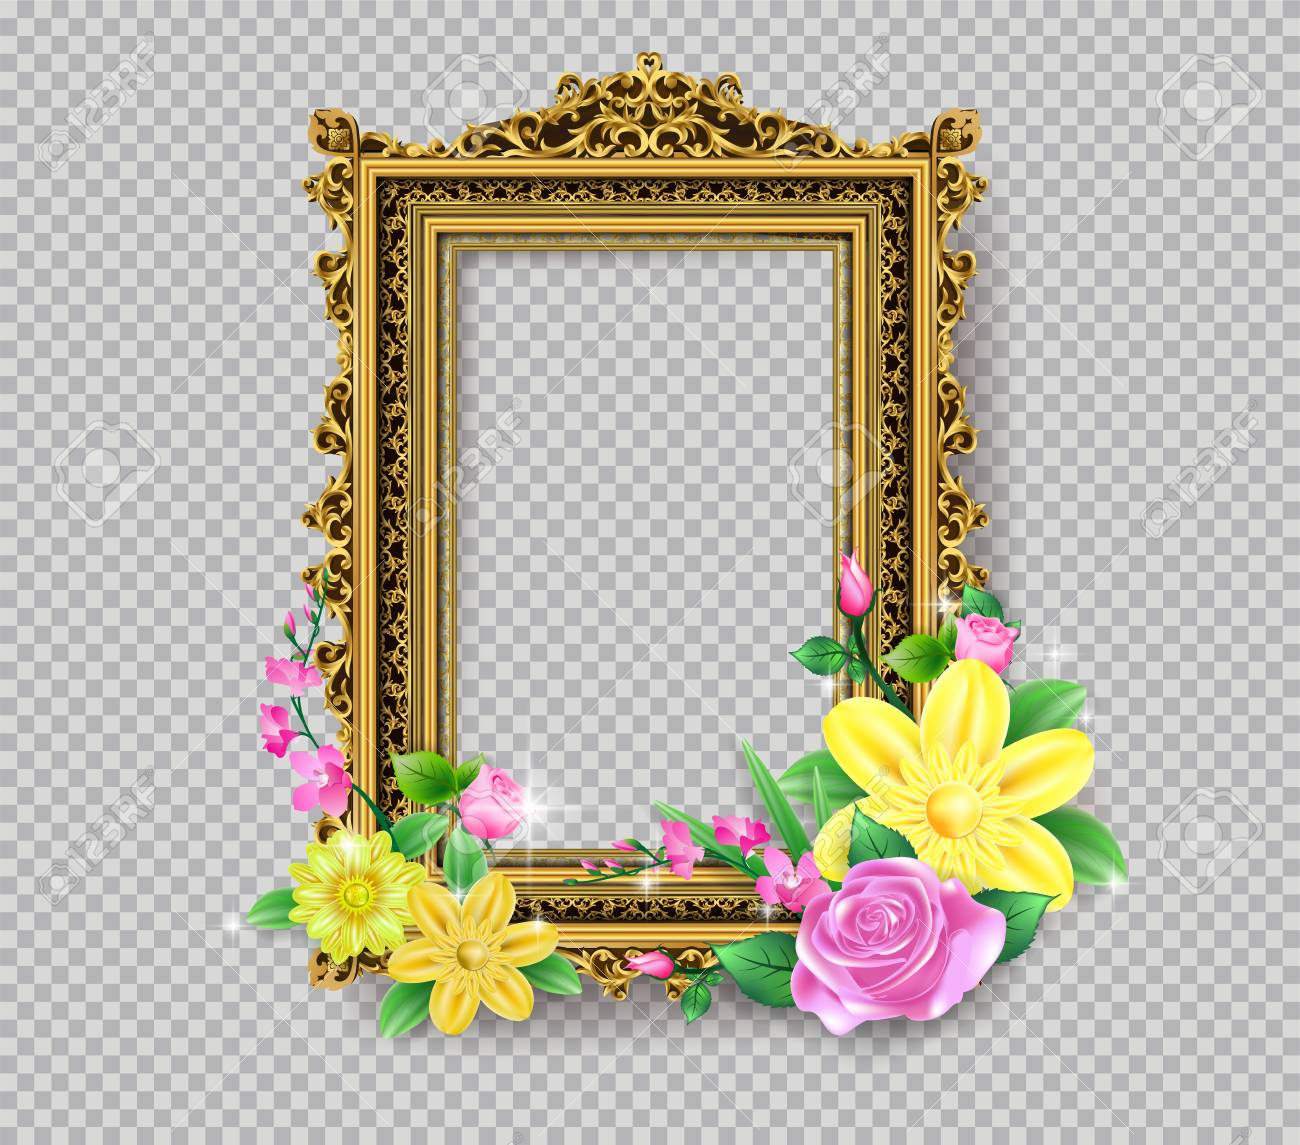 Decorative Vintage Frames And Borders Set Gold Photo Frame With